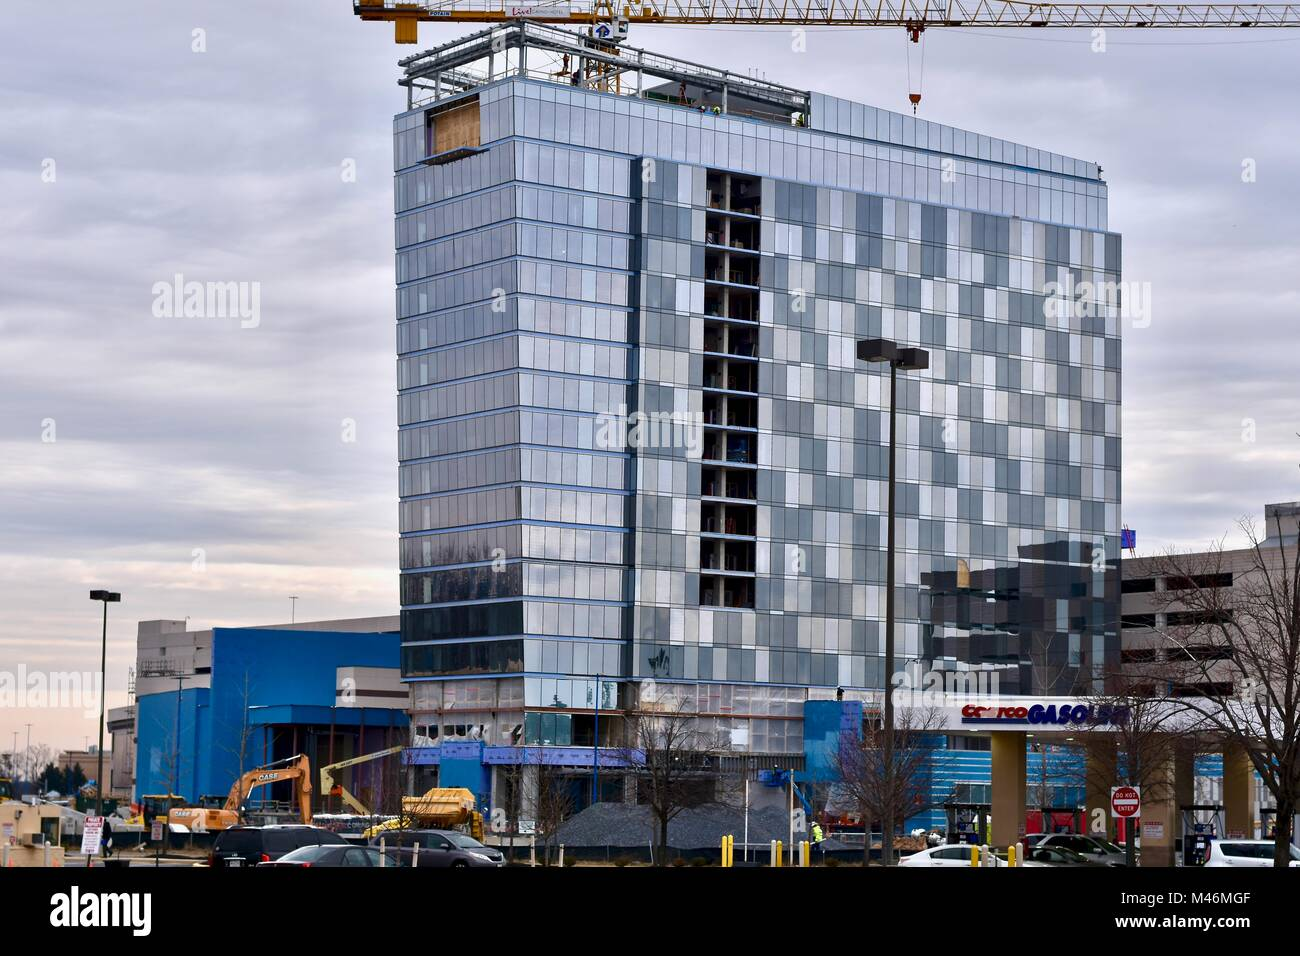 Maryland Live Casino Hotel High Resolution Stock Photography And Images Alamy